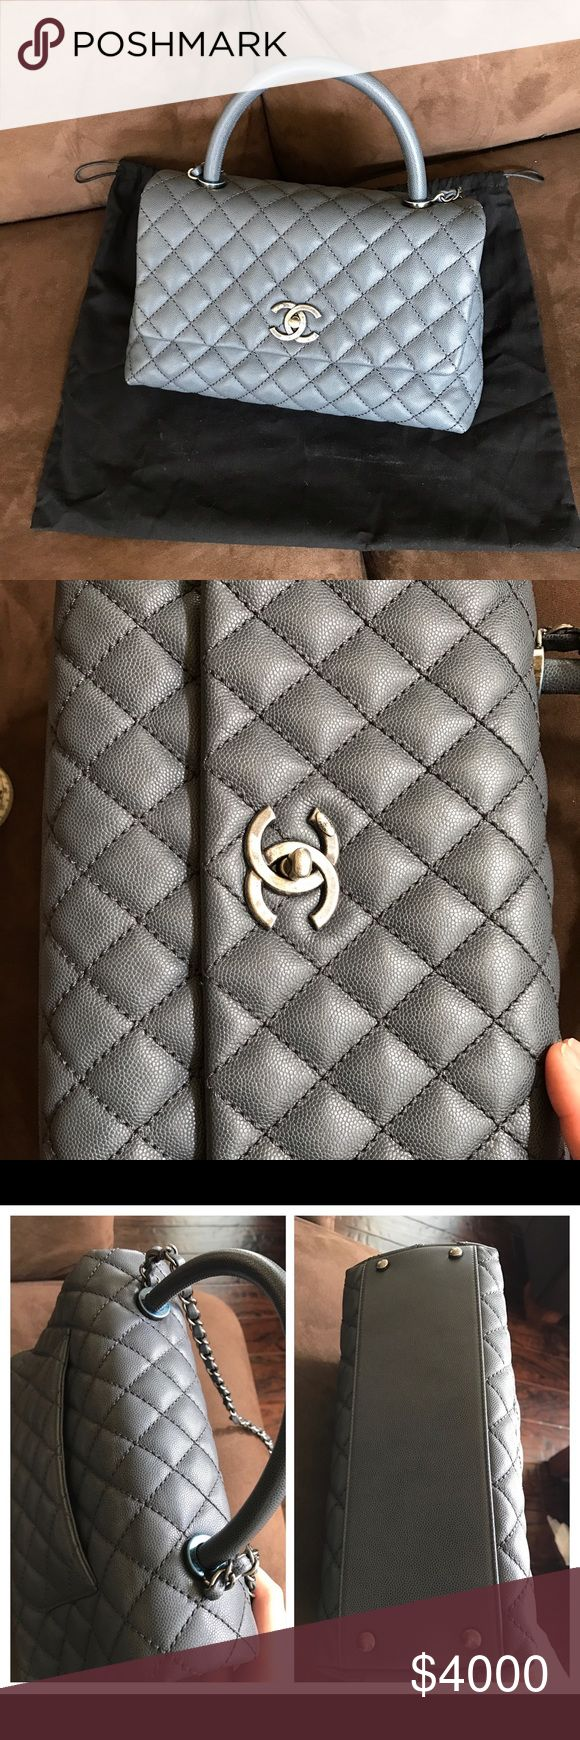 Small Chanel Coco Handle Coco Handle Carviar In Grey. Comes with dustbag and box. Used only one time.  Will lower through ️️ CHANEL Bags